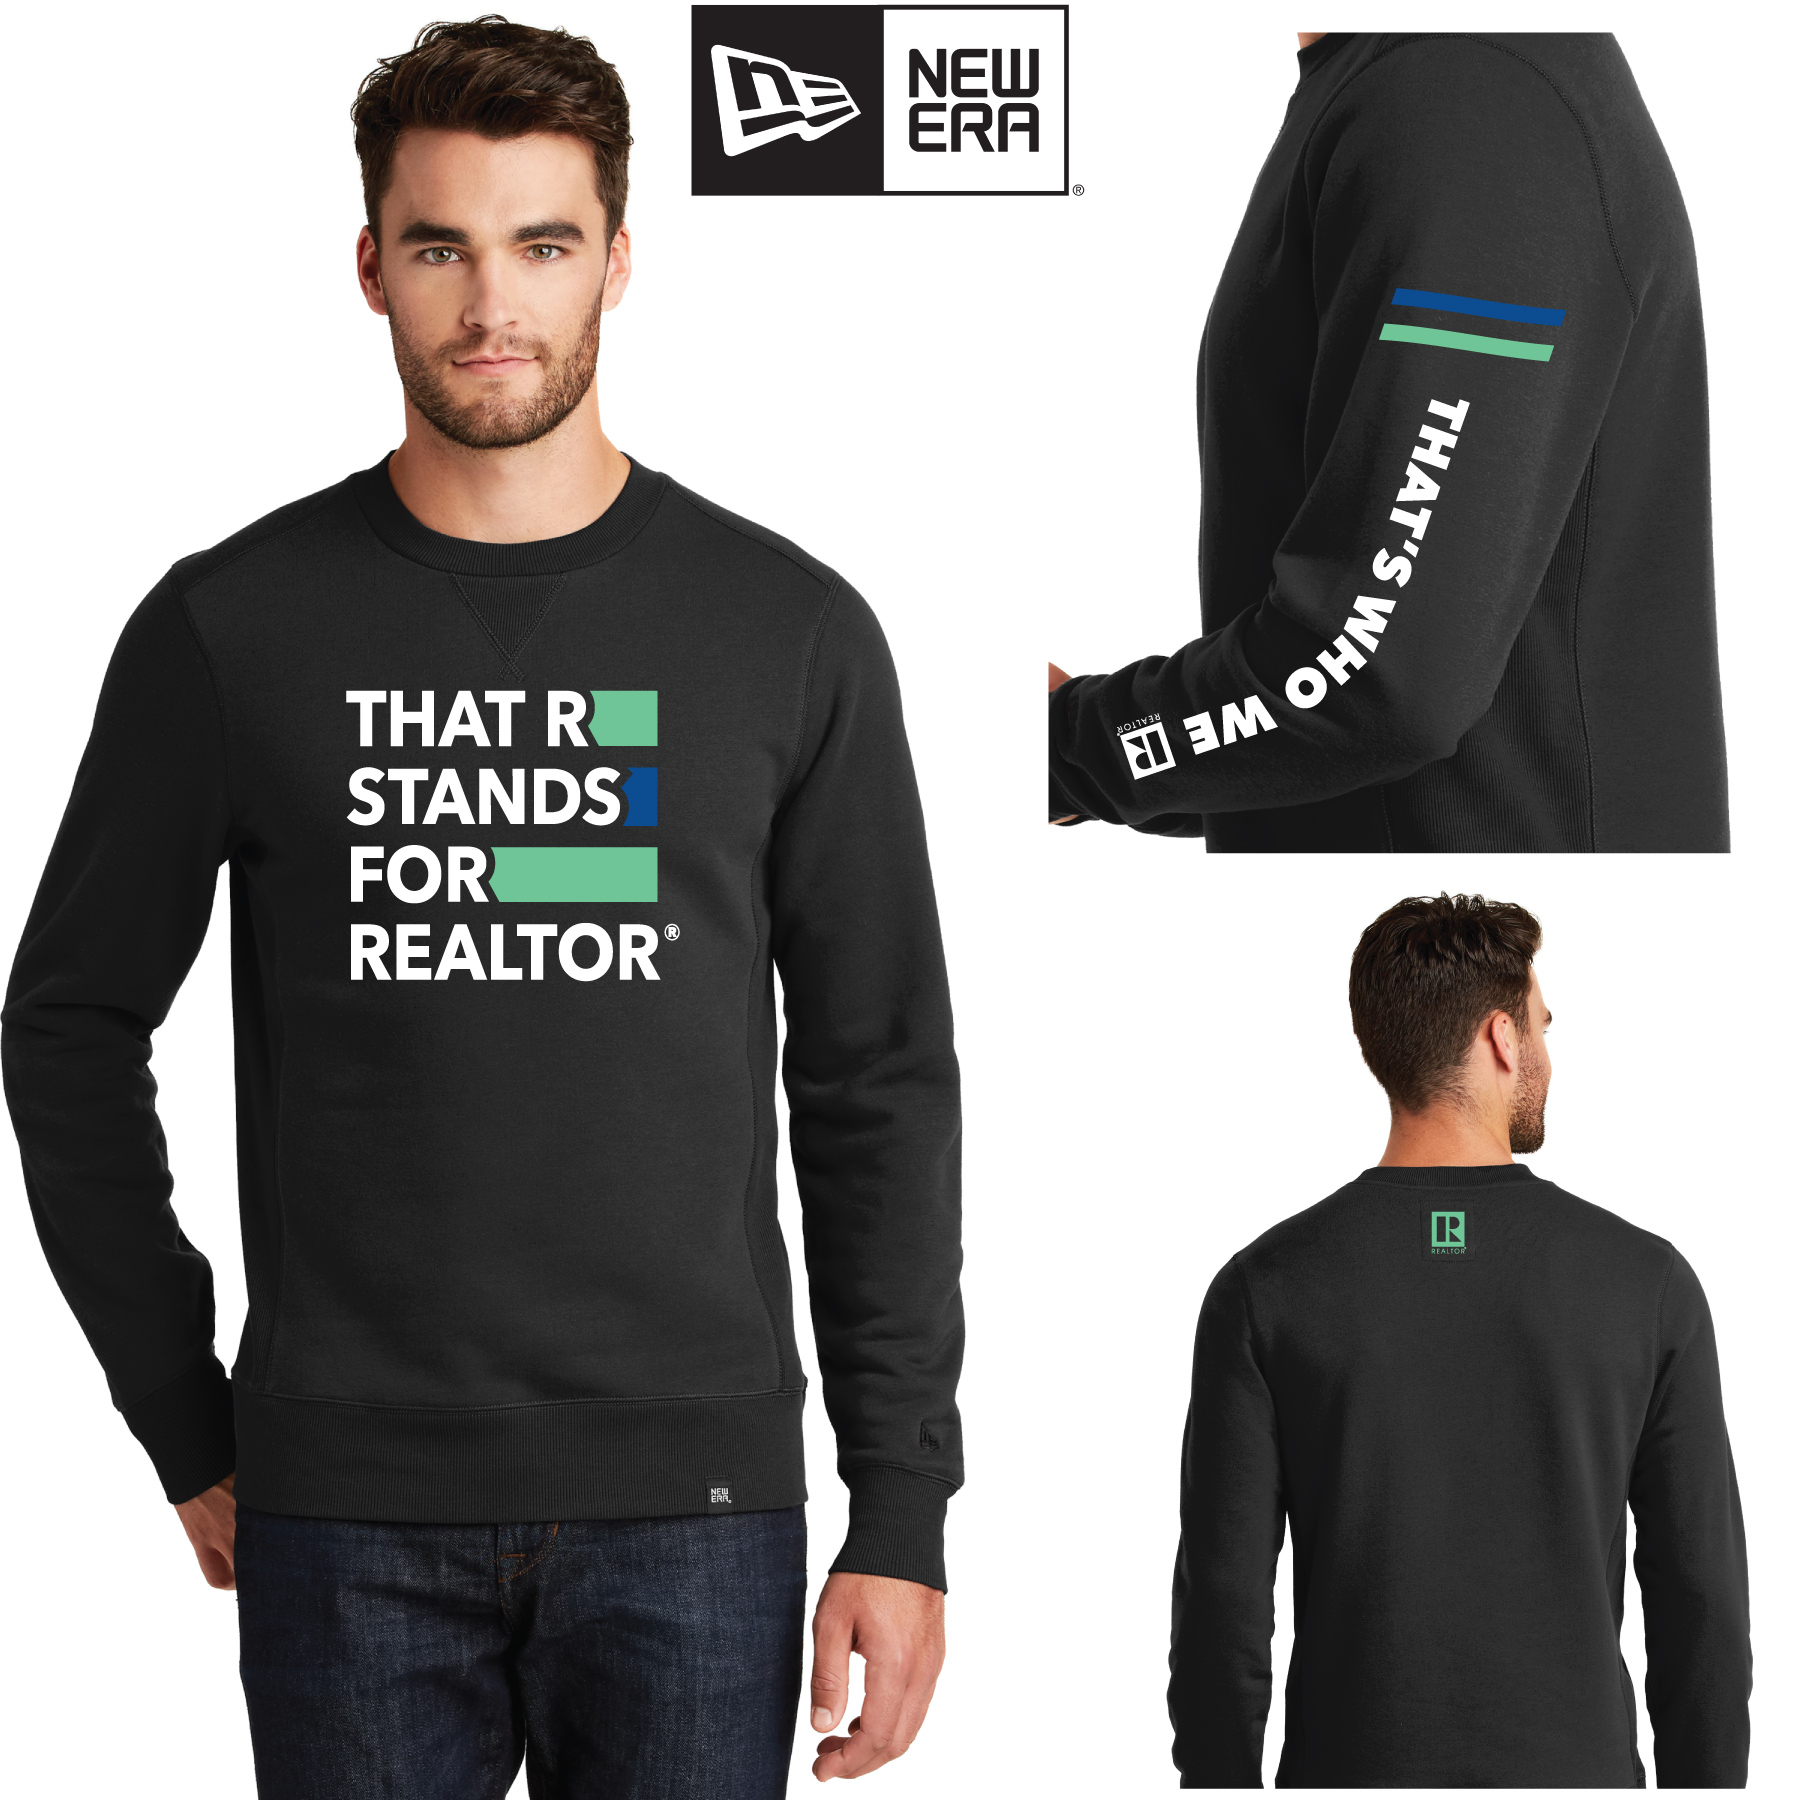 """That R Stands for REALTOR®"" New Era® French Terry Sweatshirt twwr,ThatsWhoWeR,That's,TWWR,ThatWho,That'sWho,Twwr,Thats,Whos,We,Ares,TWWR,Sweats,Shirts,Sweatshirts,Necks"